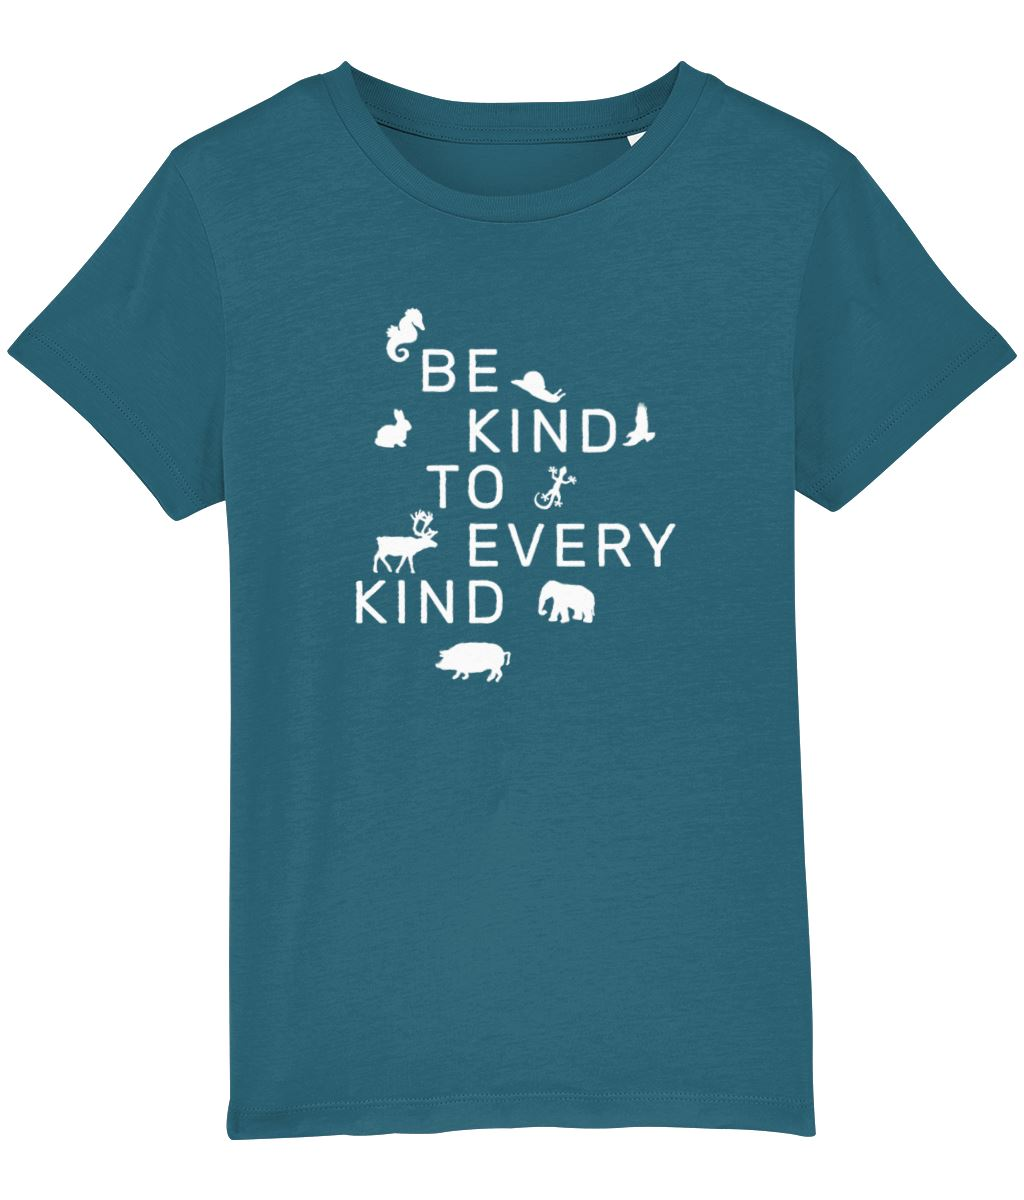 """Be Kind To Every Kind"" Children's Vegan T-Shirt (Unisex) Clothing Vegan Original Ocean Depth 3-4 years"